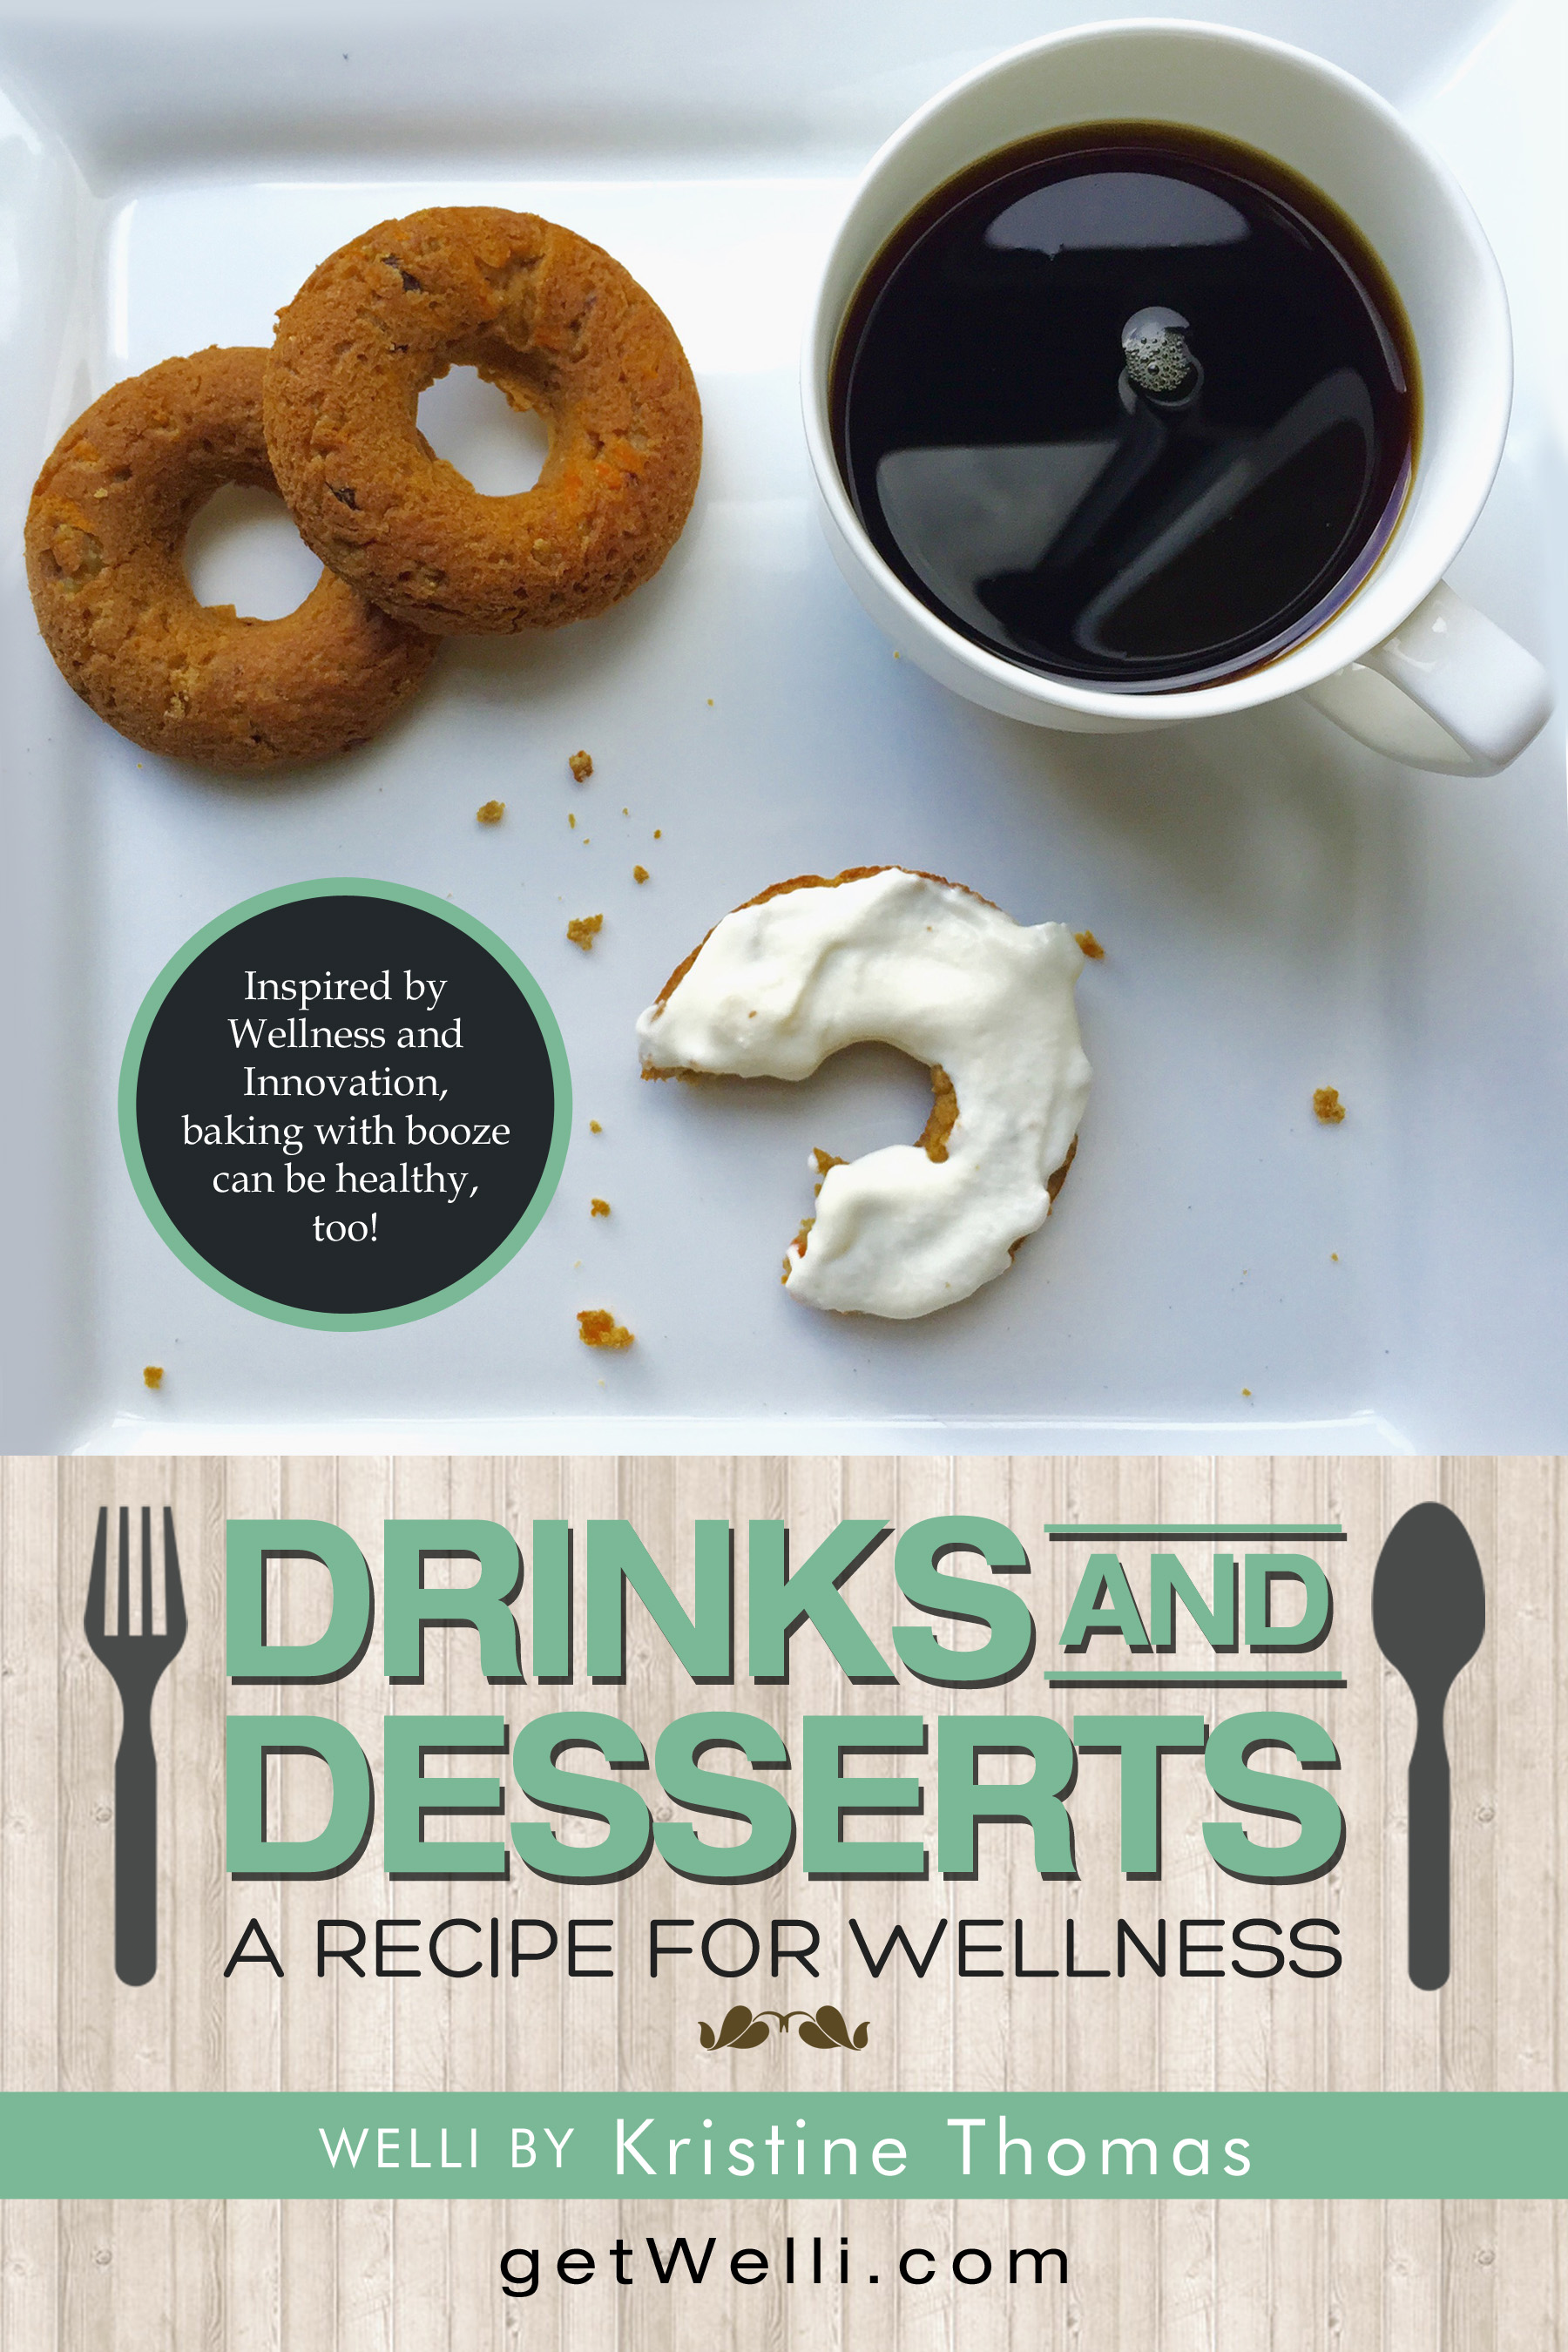 drinks_and_desserts-1